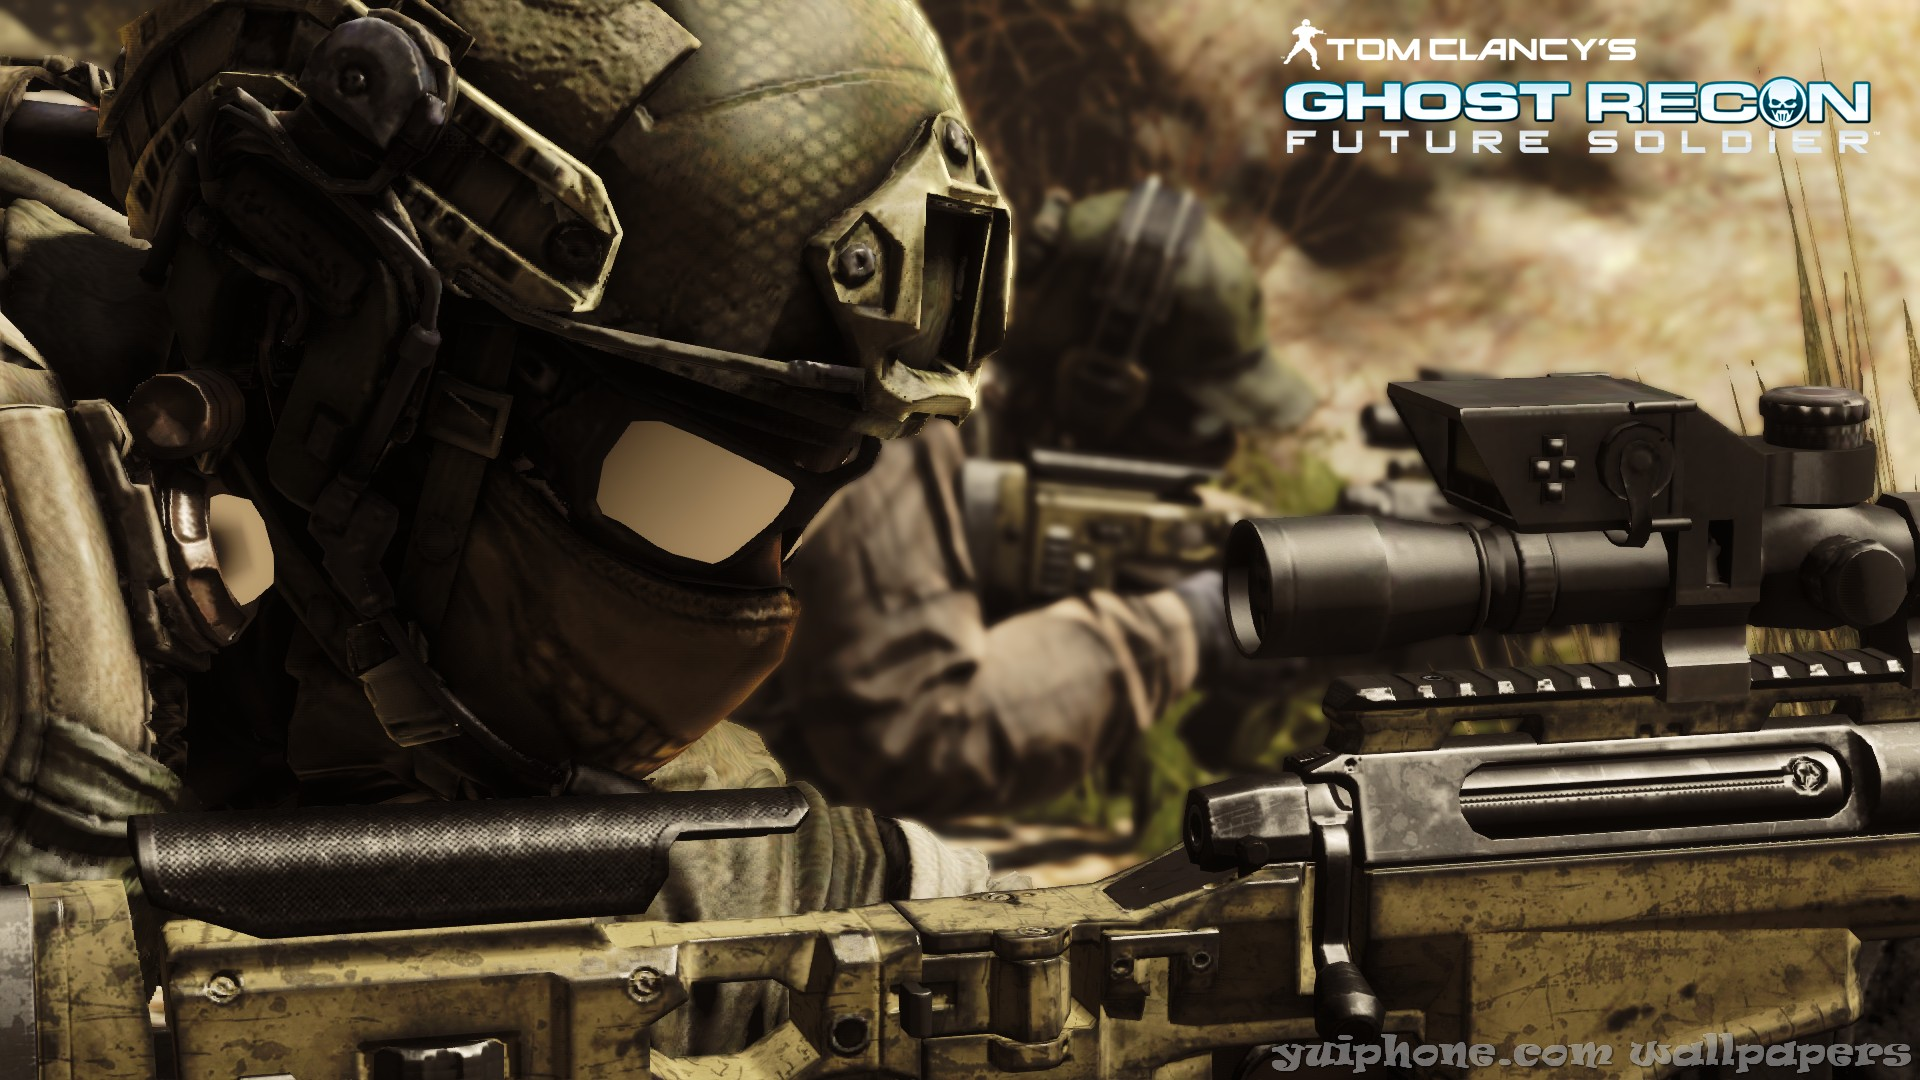 Ghost Recon Future Soldier Wallpaper - WallpaperSafari